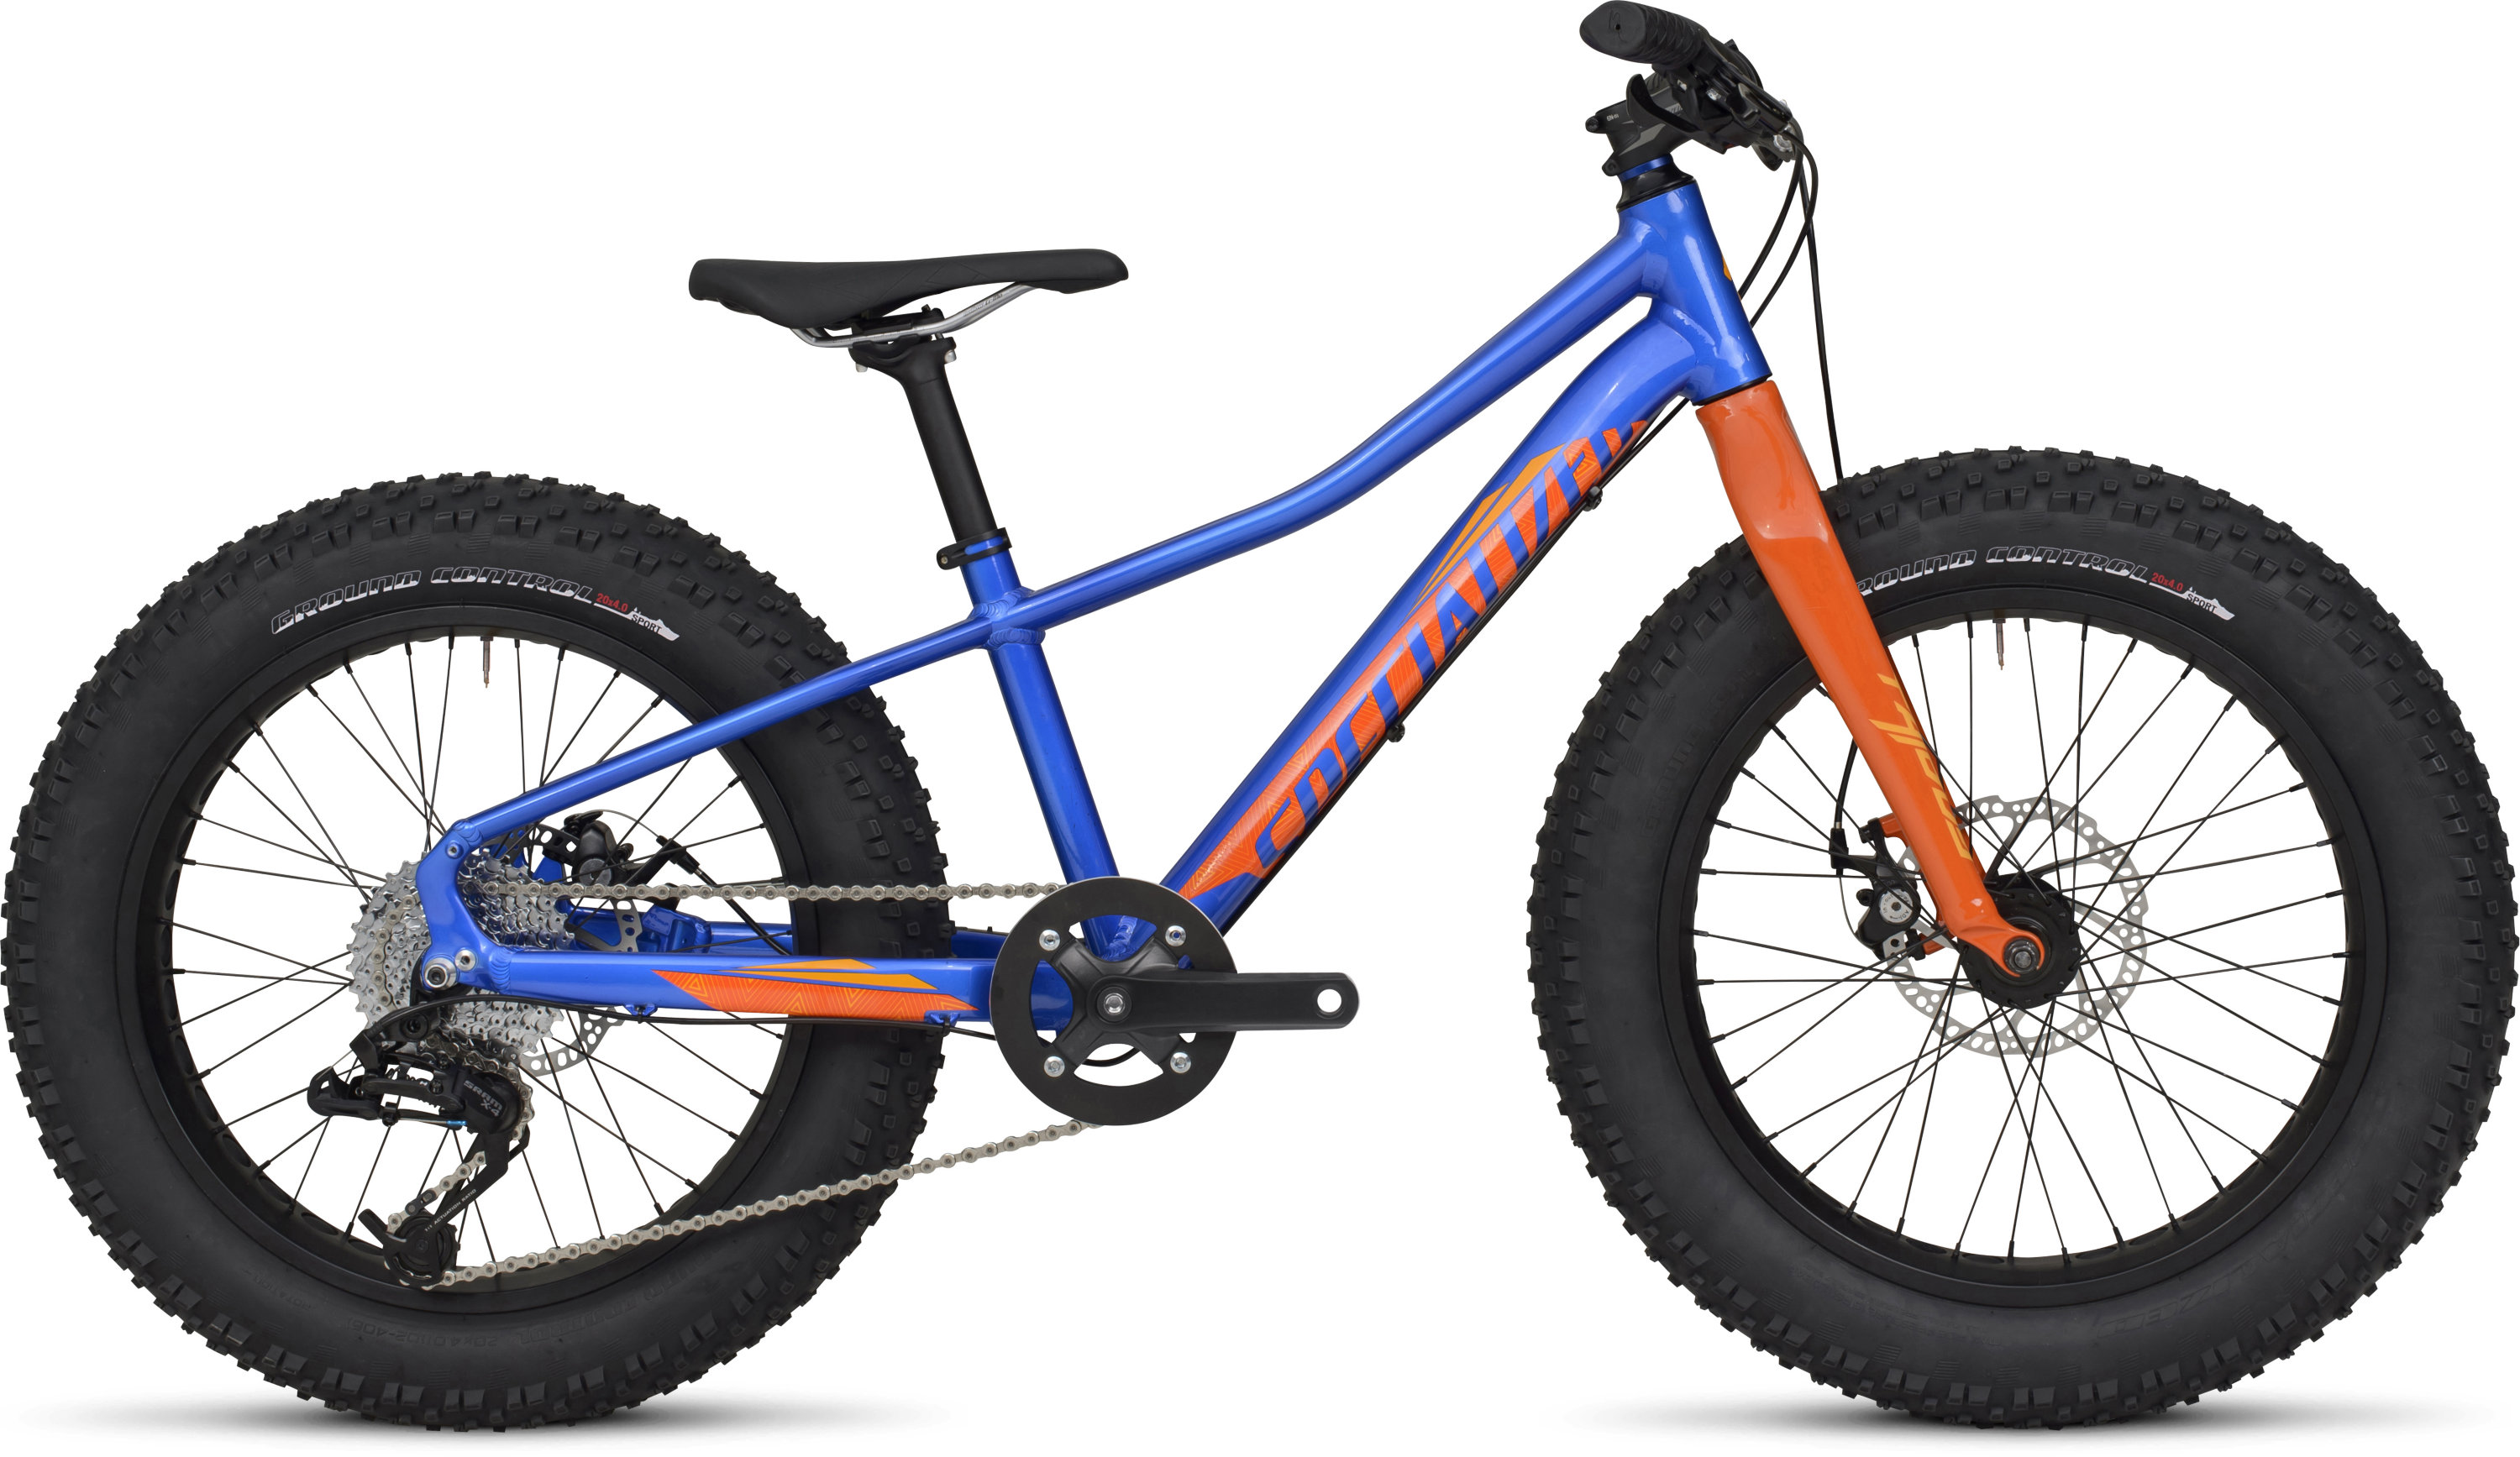 Specialized Fatboy 20 Gloss Royal Blue/Moto Orange/Gallardo Orange 11 - Alpha Bikes